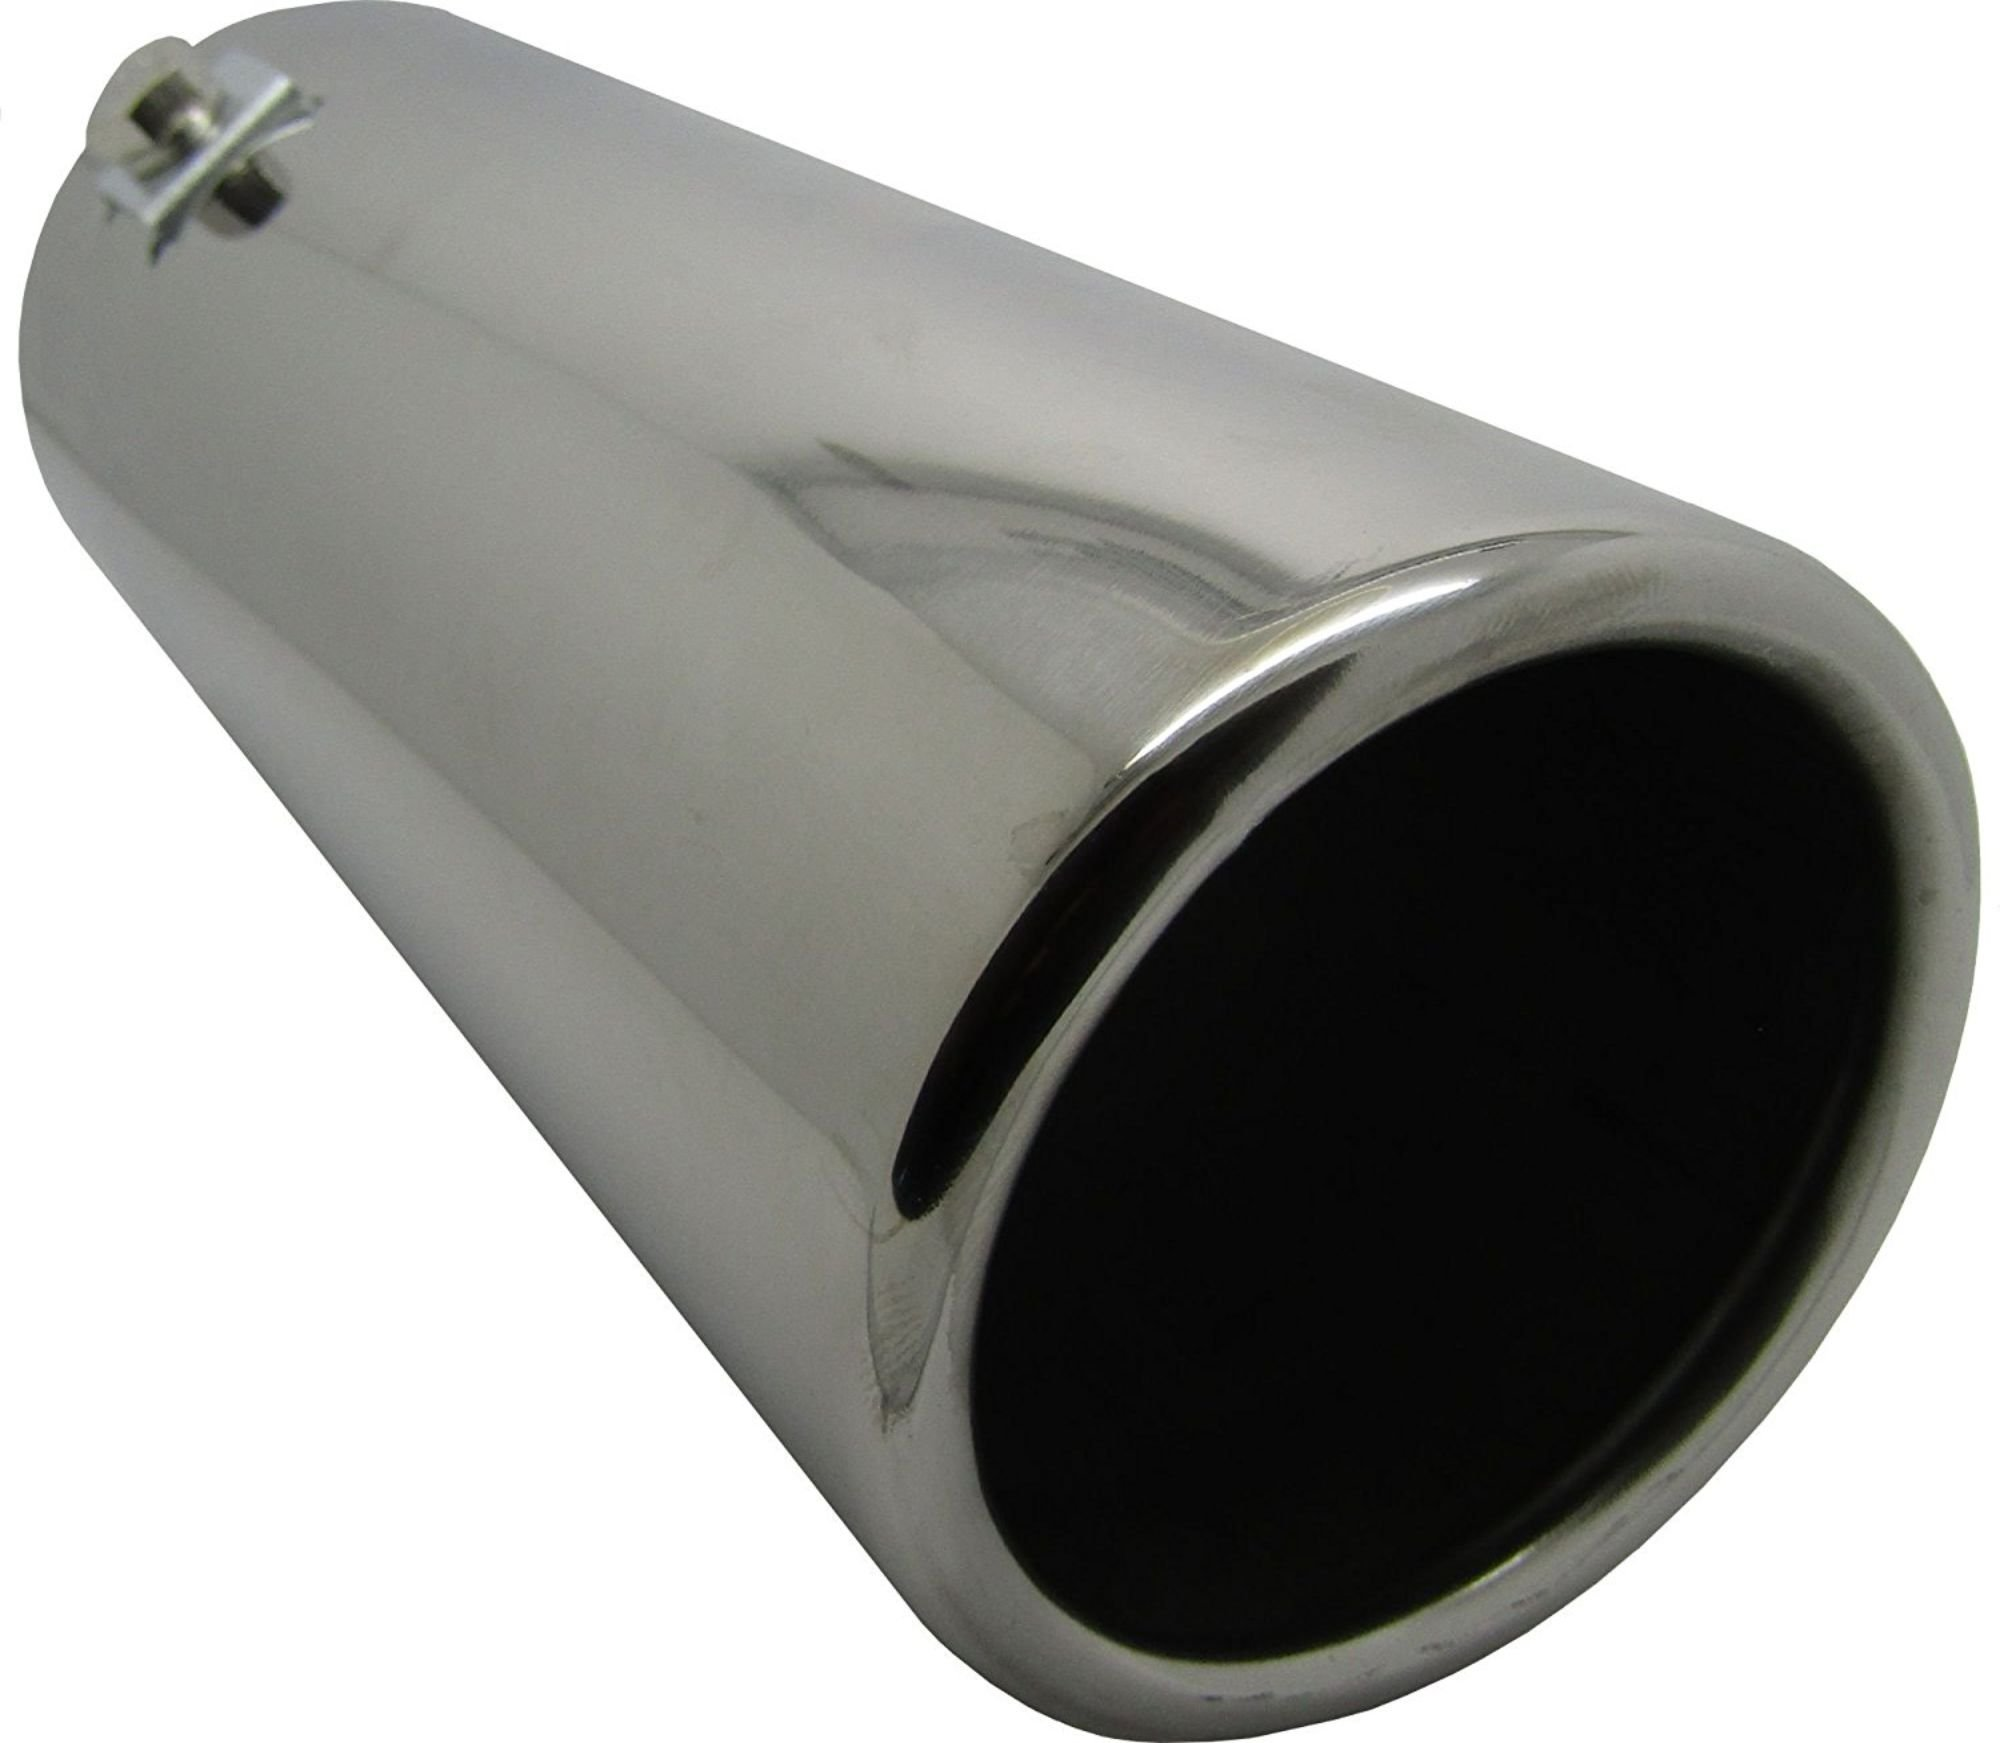 WLW/® 155mm Stainless Steel Oval Round Straight Exhaust Tail Pipe Bumper End Tip Fits 51-55mm WLW1-RB79